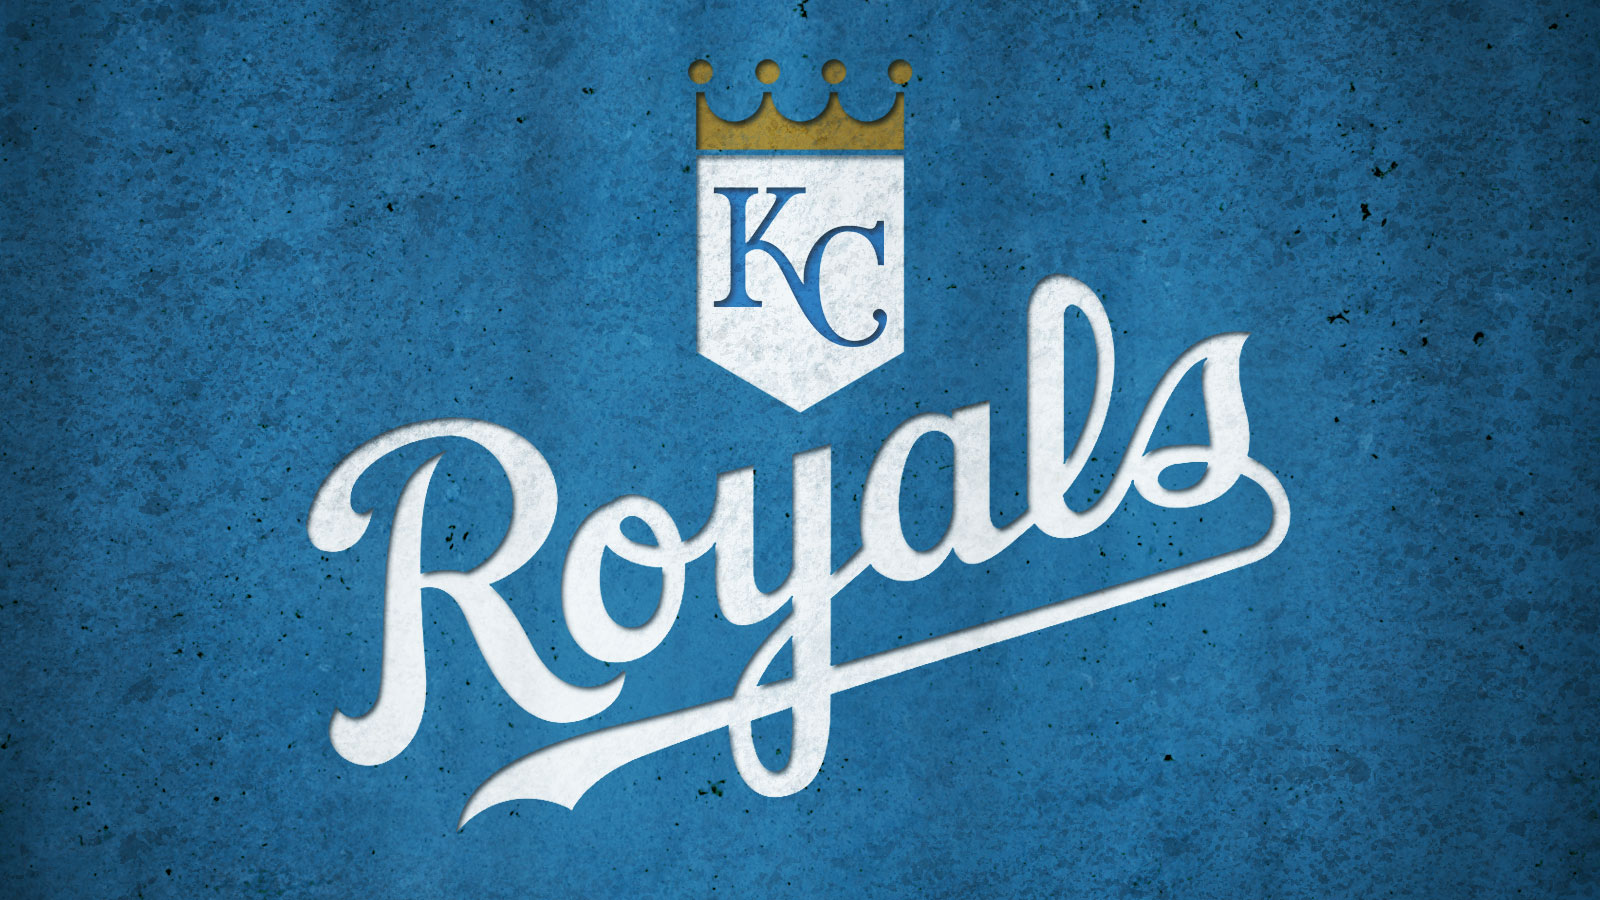 MLB Kansas City Royals Logo Team wallpaper 2018 in Baseball 1600x900